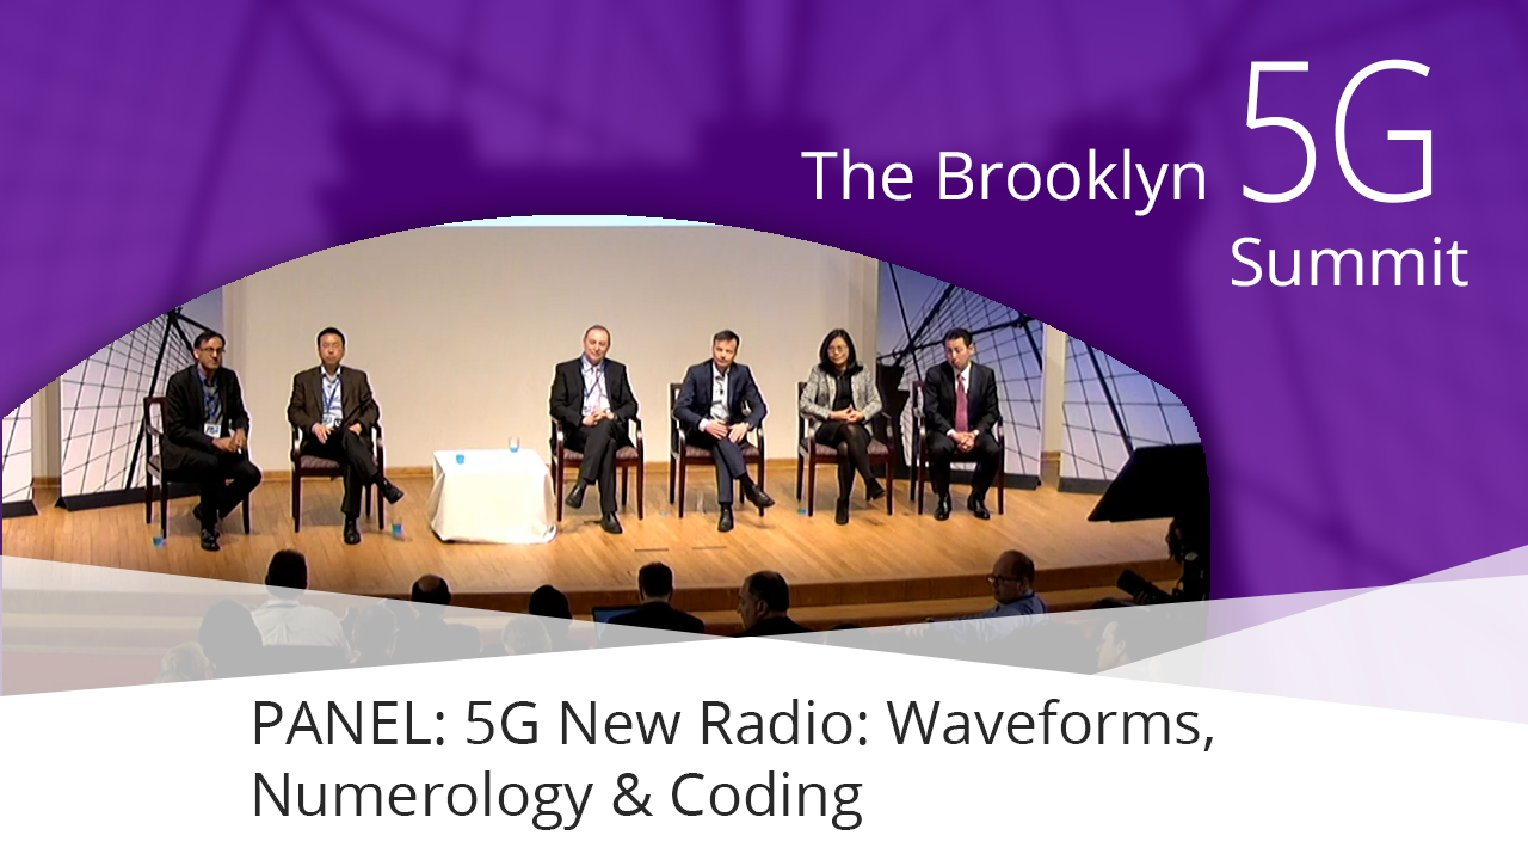 PANEL - 5G New Radio: Waveforms, Numerology, Coding: Brooklyn 5G Summit 2017